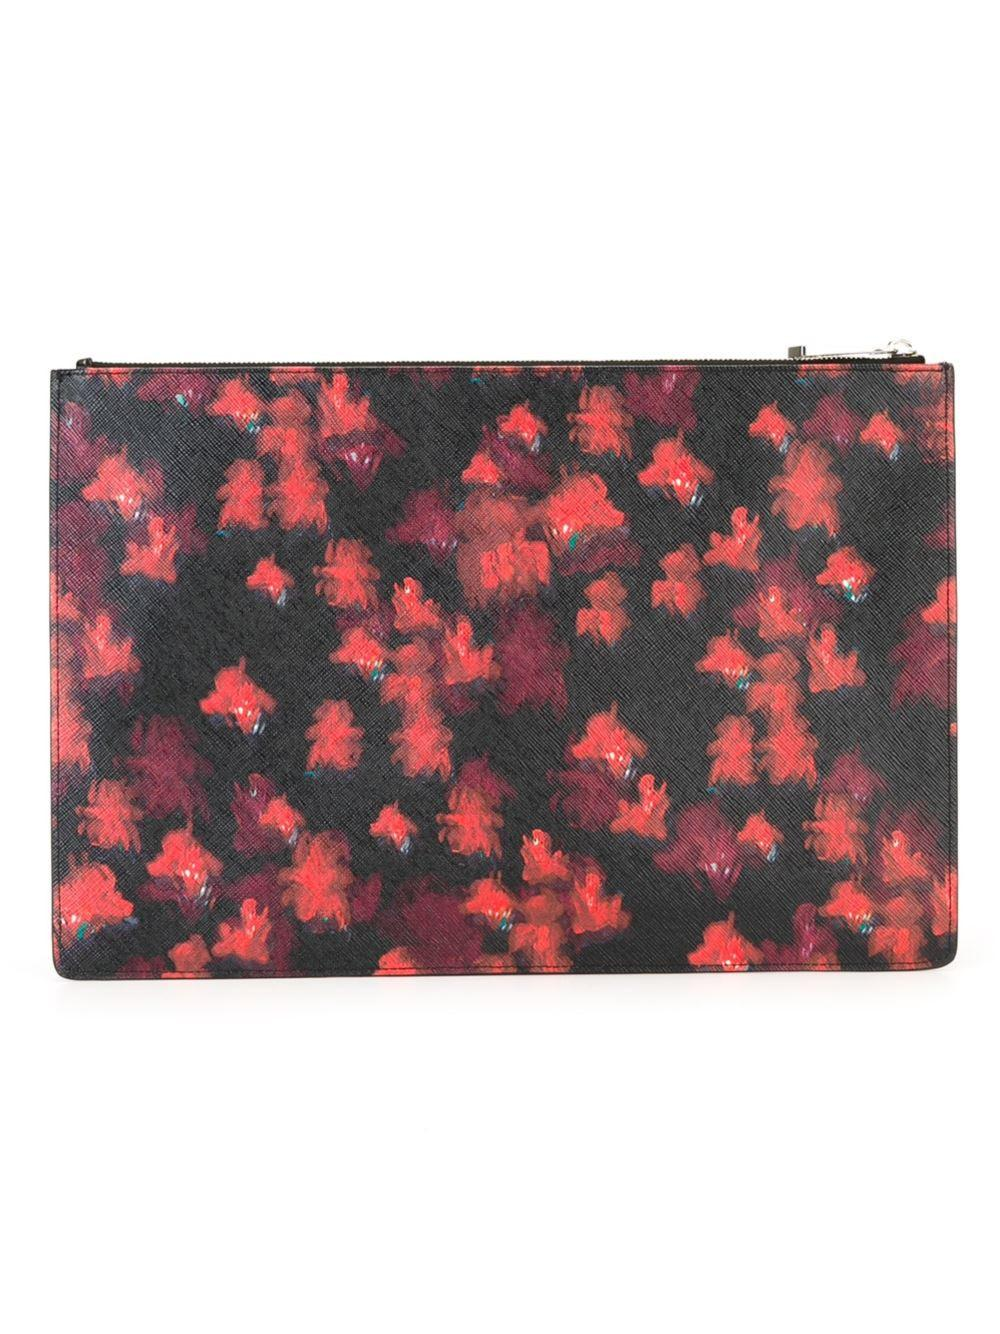 Givenchy Classic Floral Print Pouch Lyst